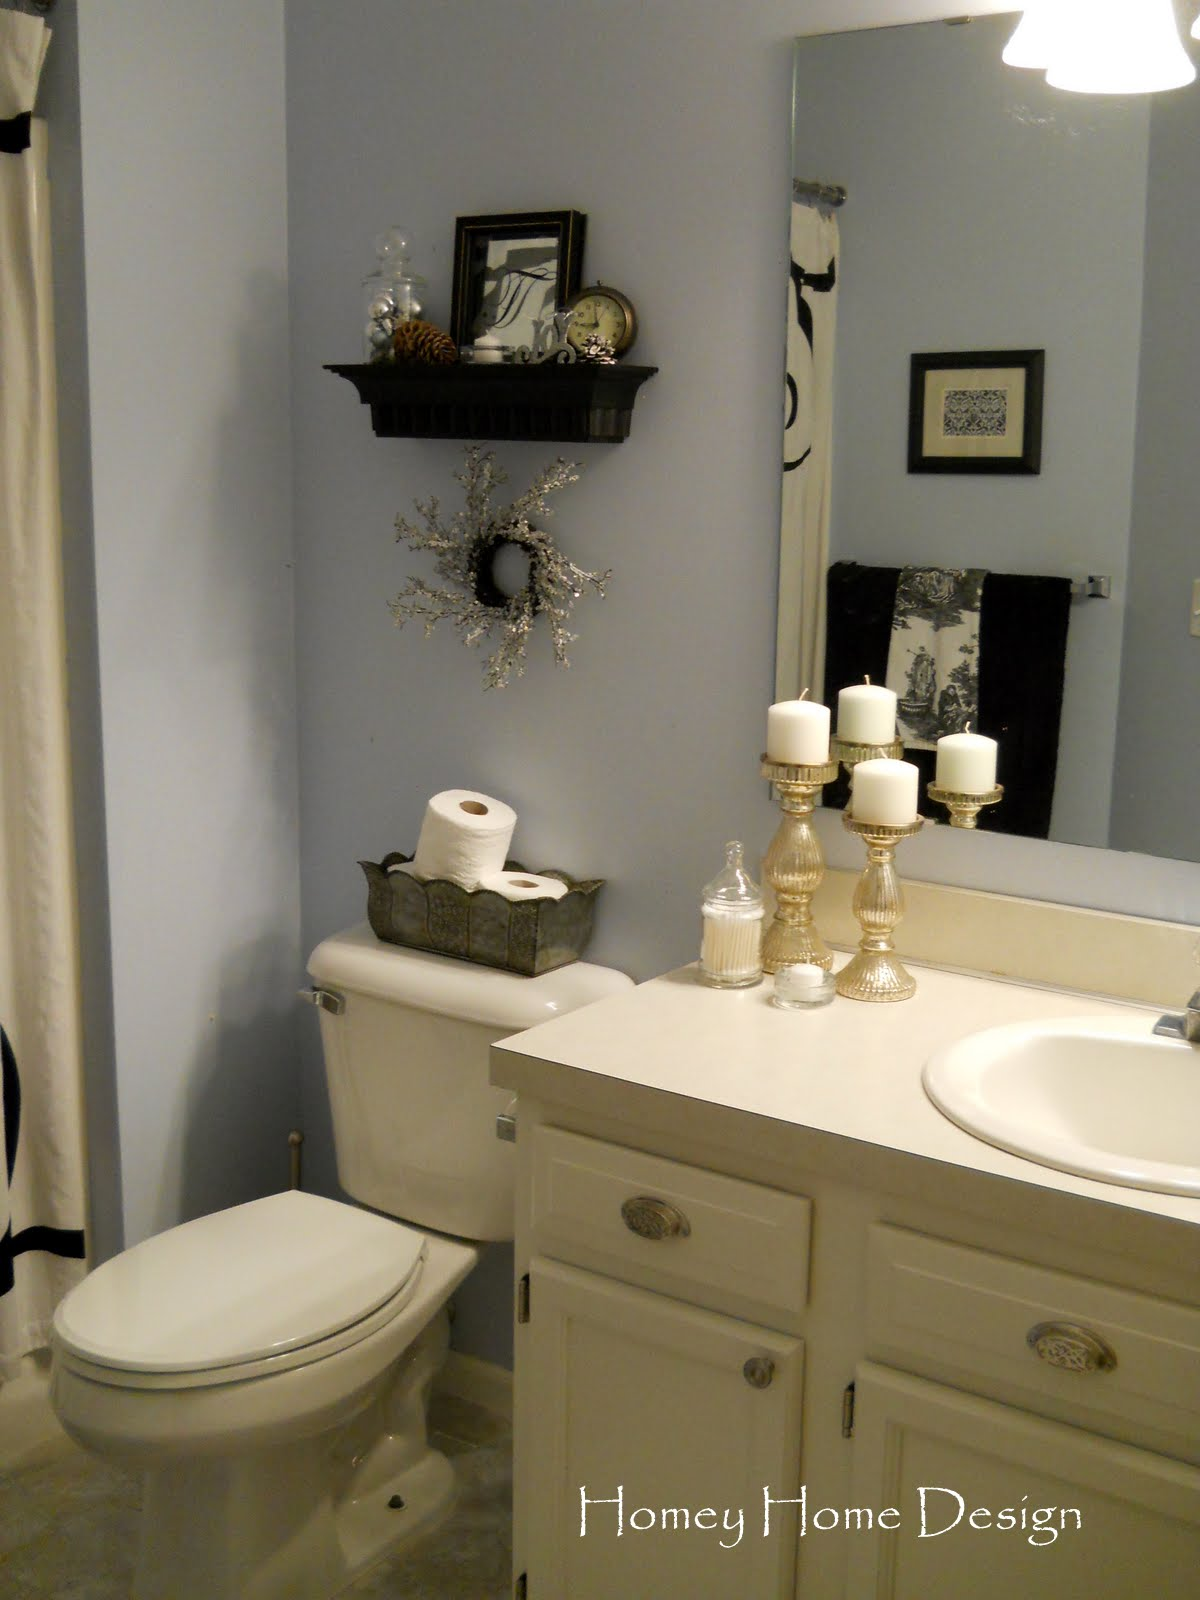 Homey home design christmas in the bathroom Bathroom decor ideas images